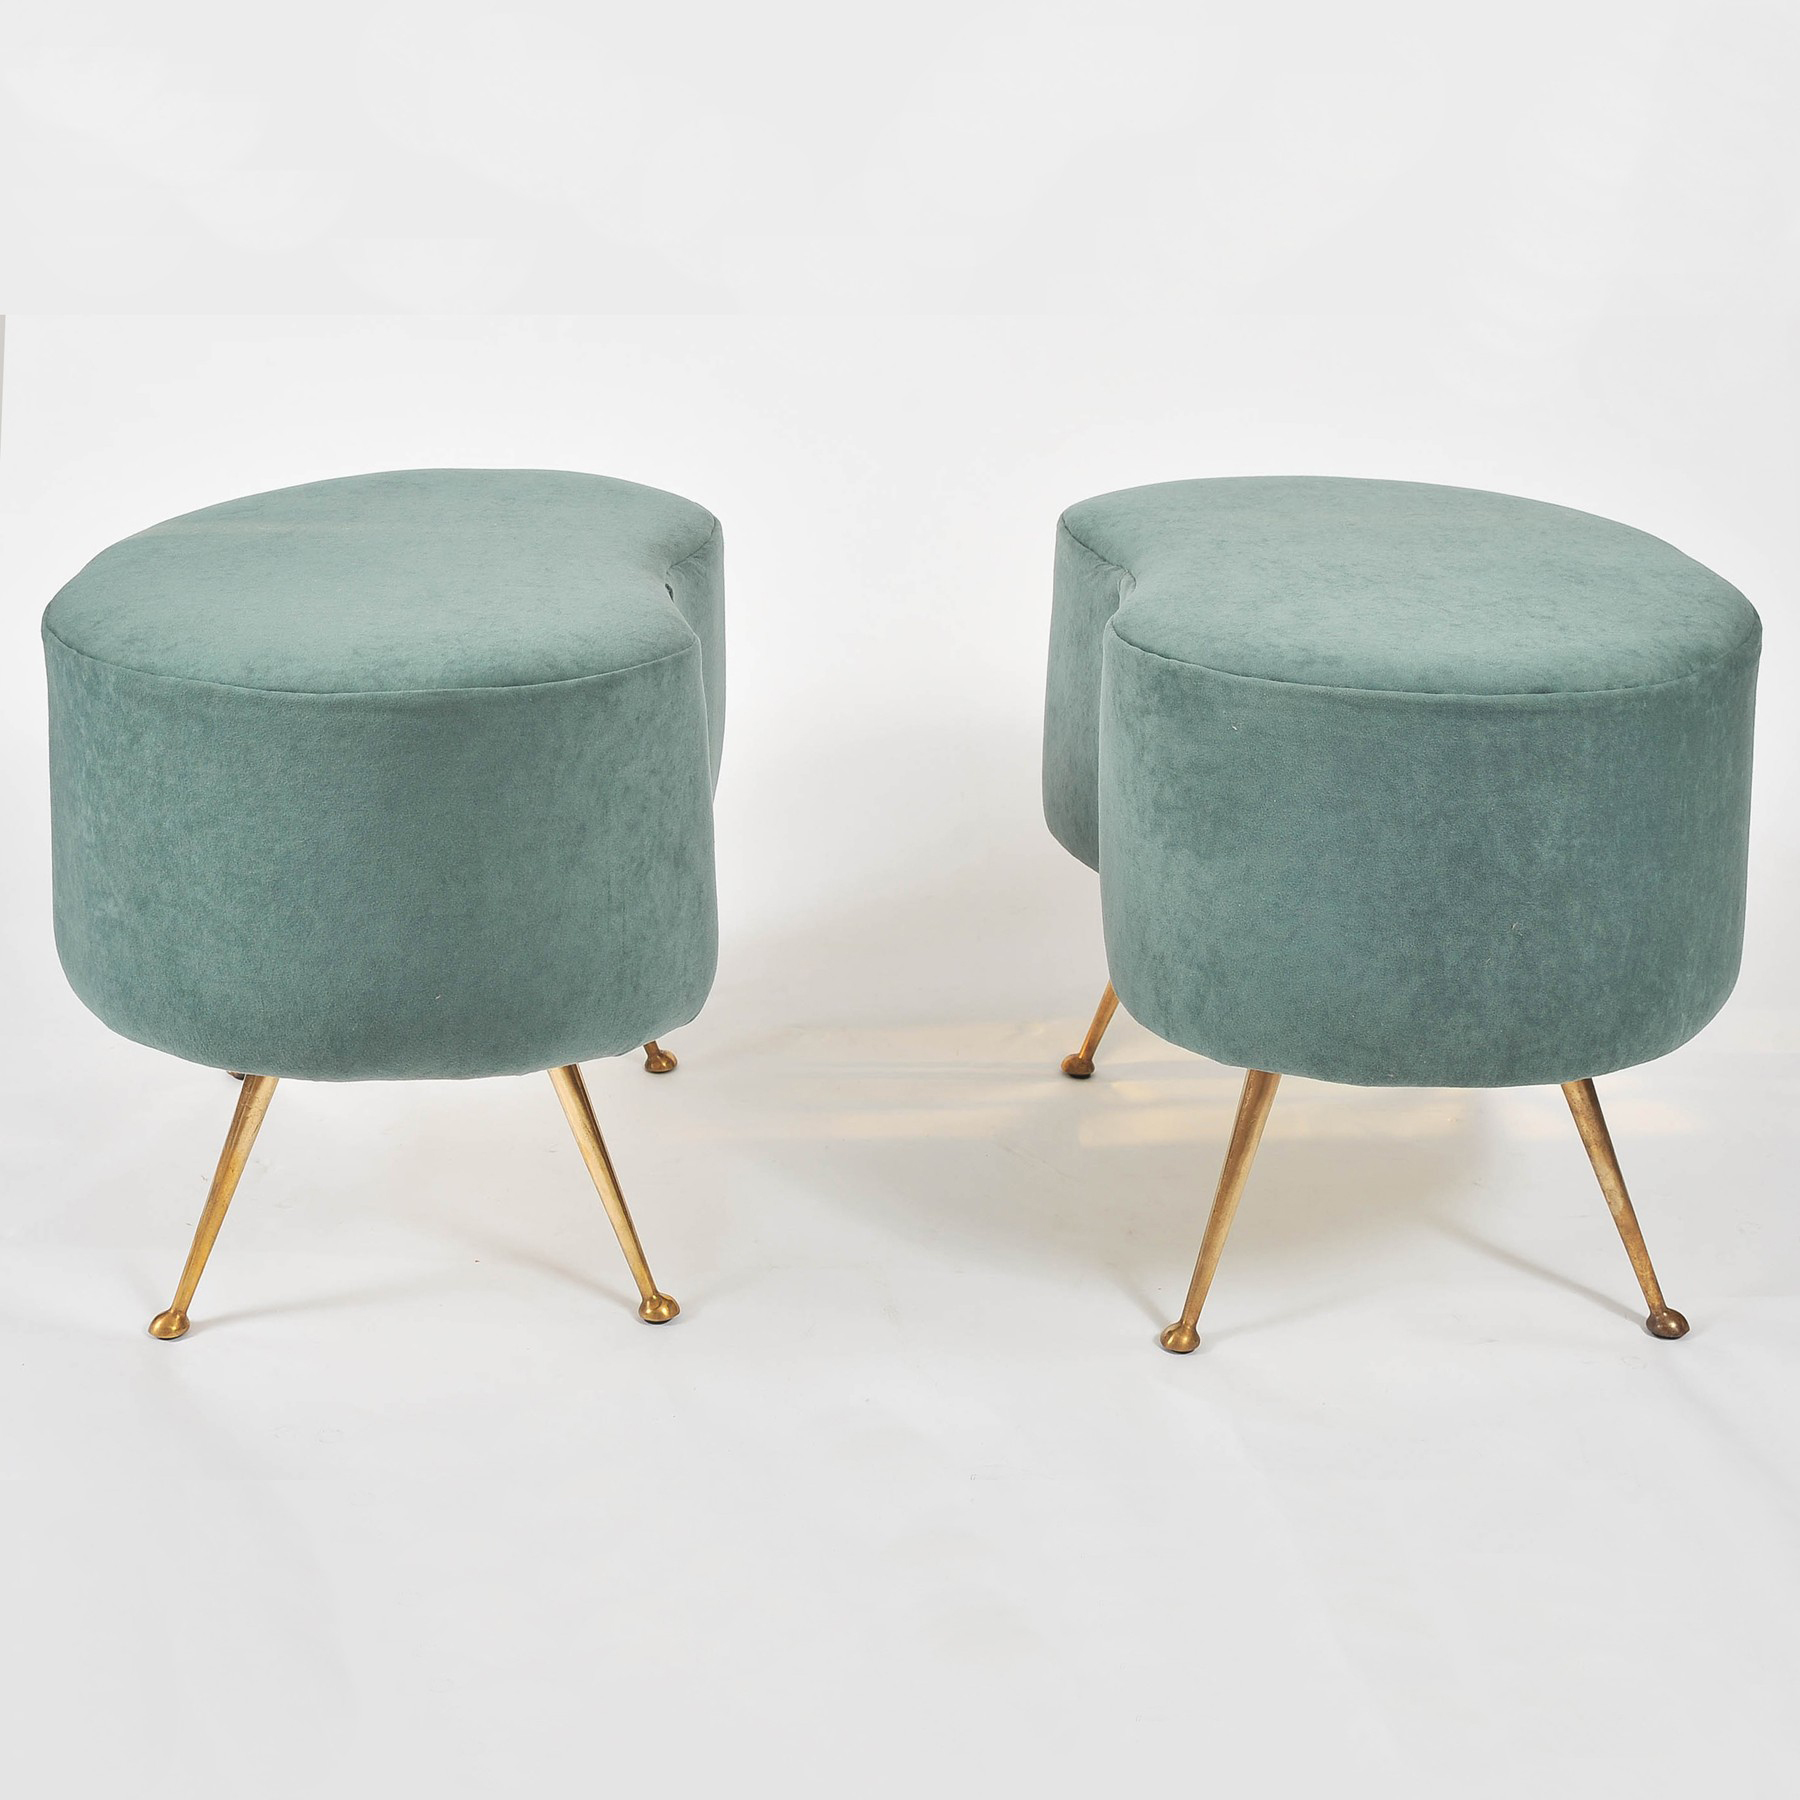 Valerie Wade Two Upholstered Stools 01